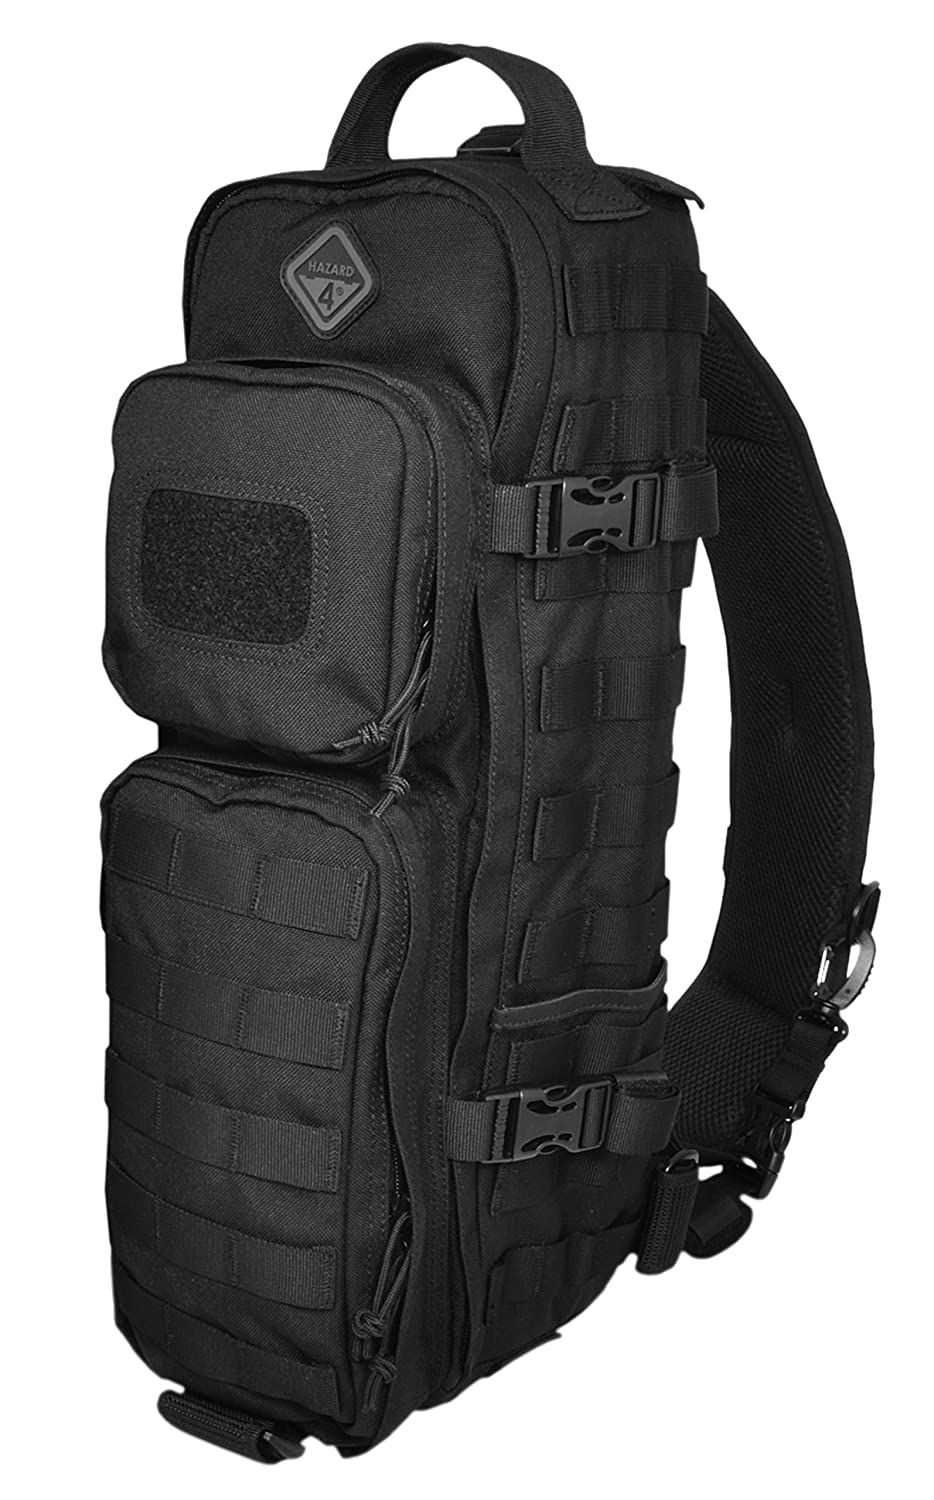 Hazard 4 Plan B Sling Backpack